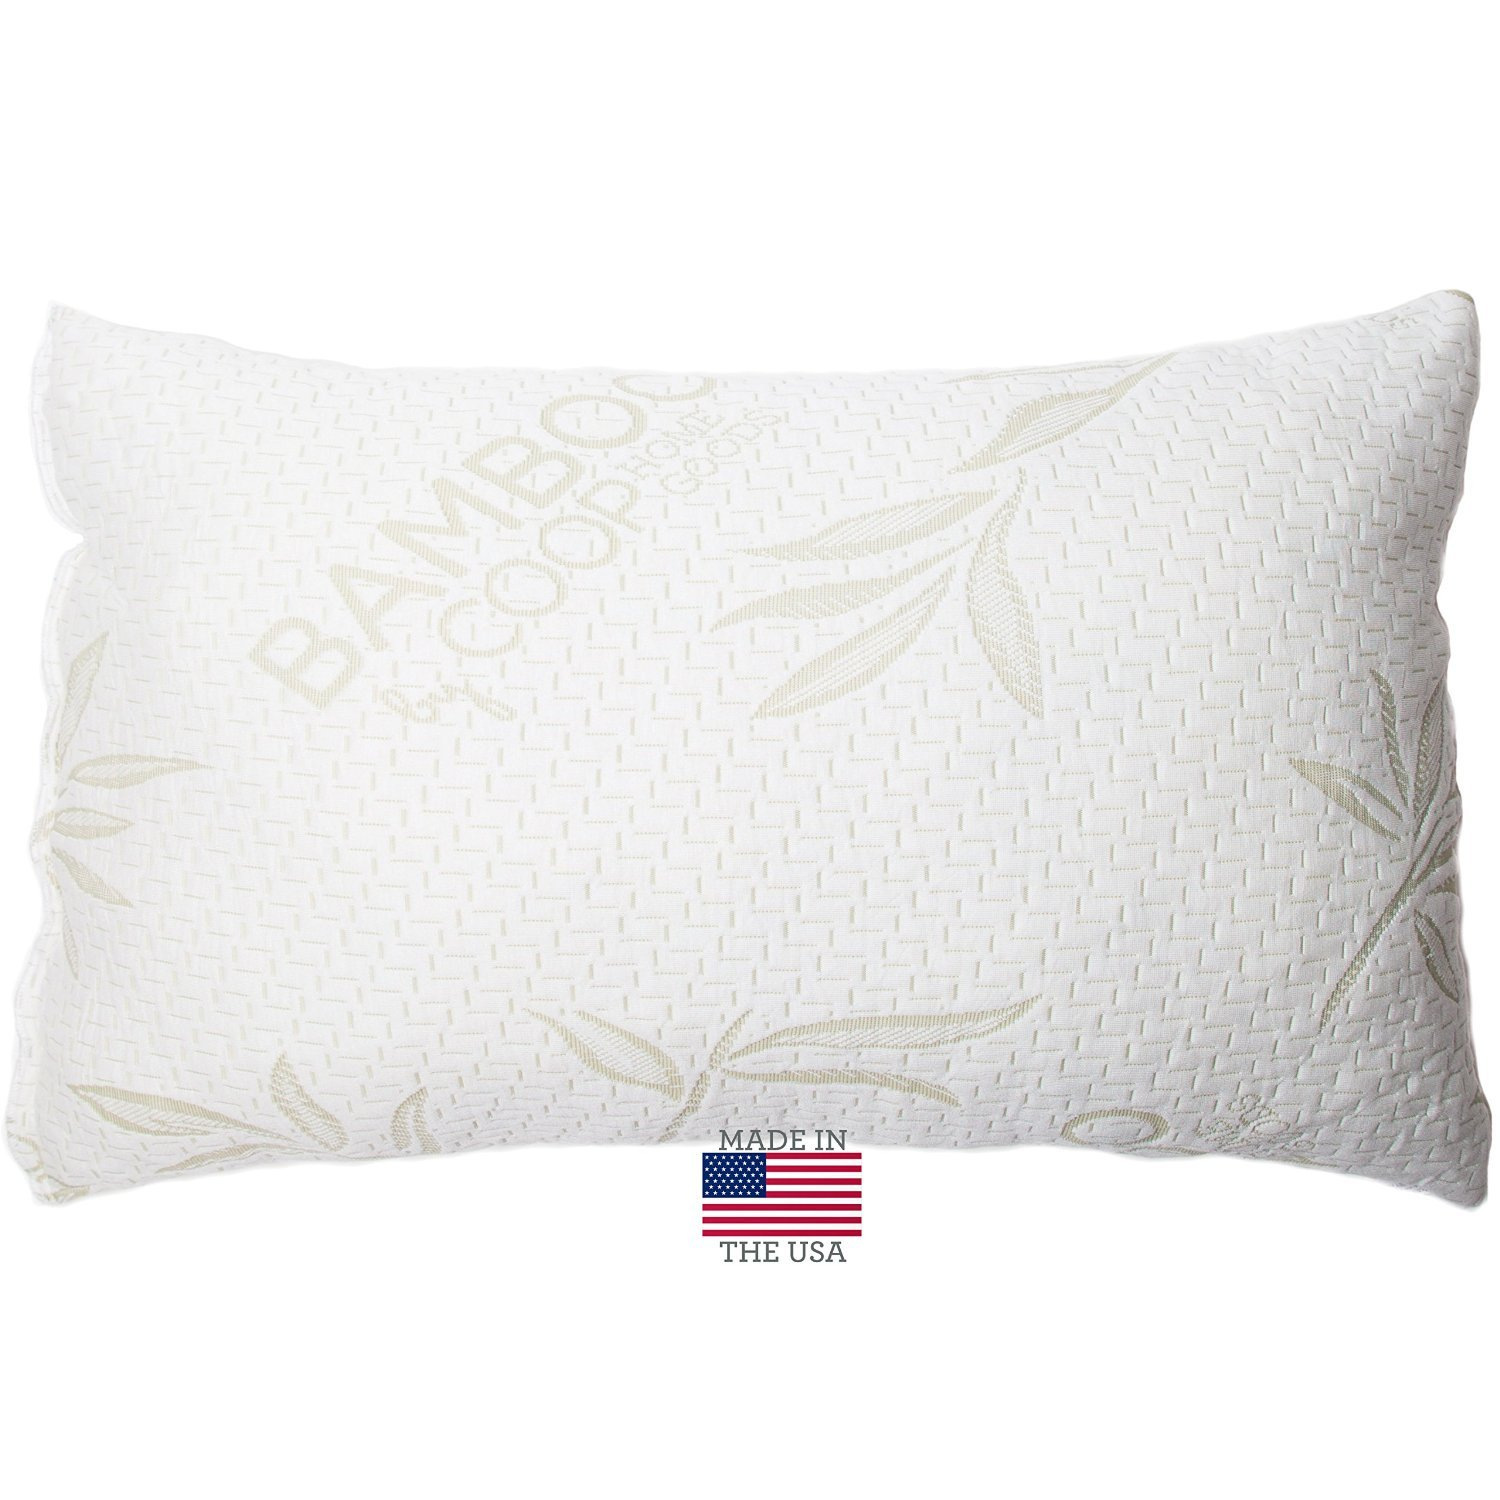 Shredded Memory Foam Pillow reviews